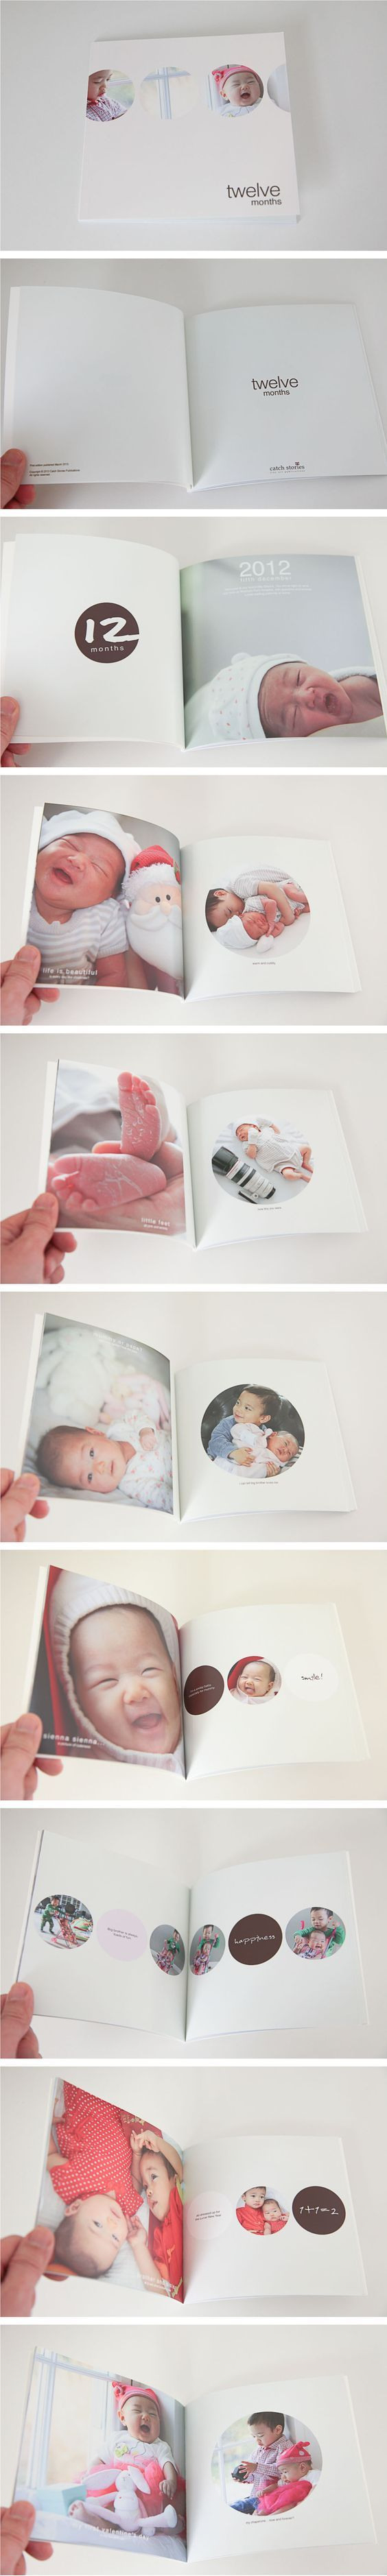 A clean and fun photobook design...: